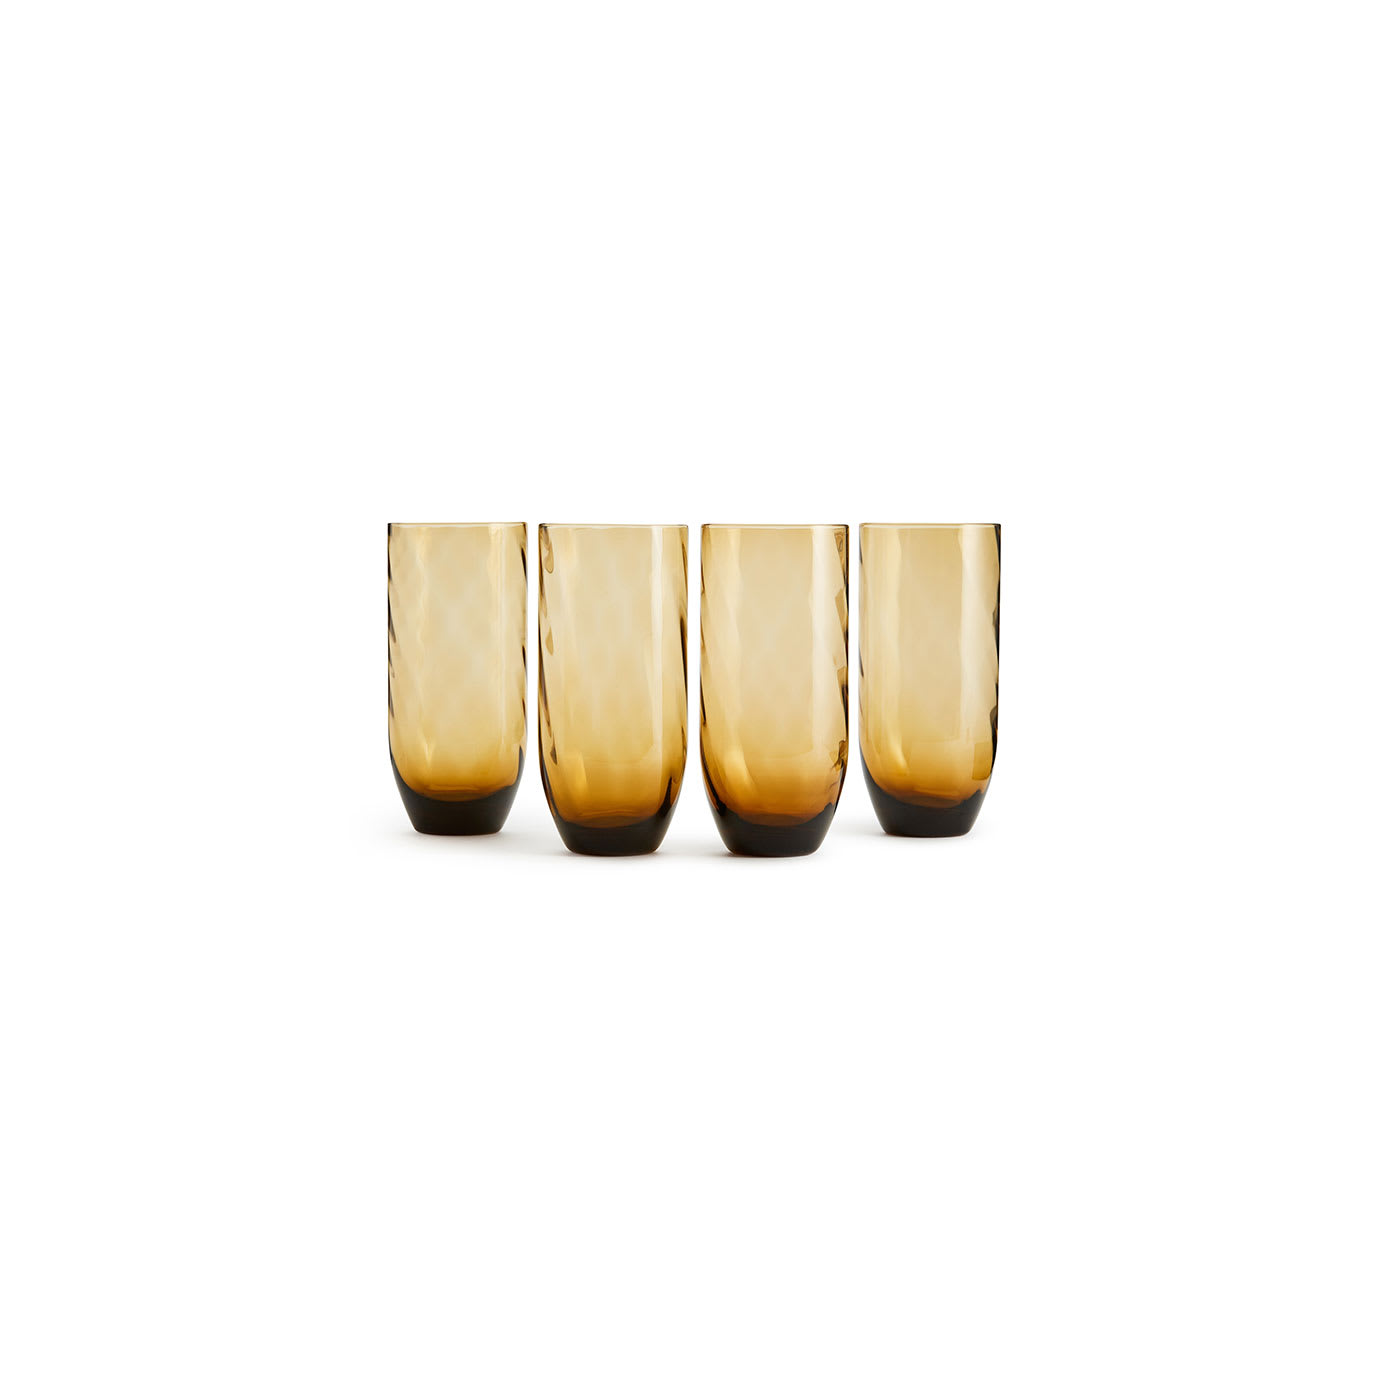 Four amber coloured glasses.